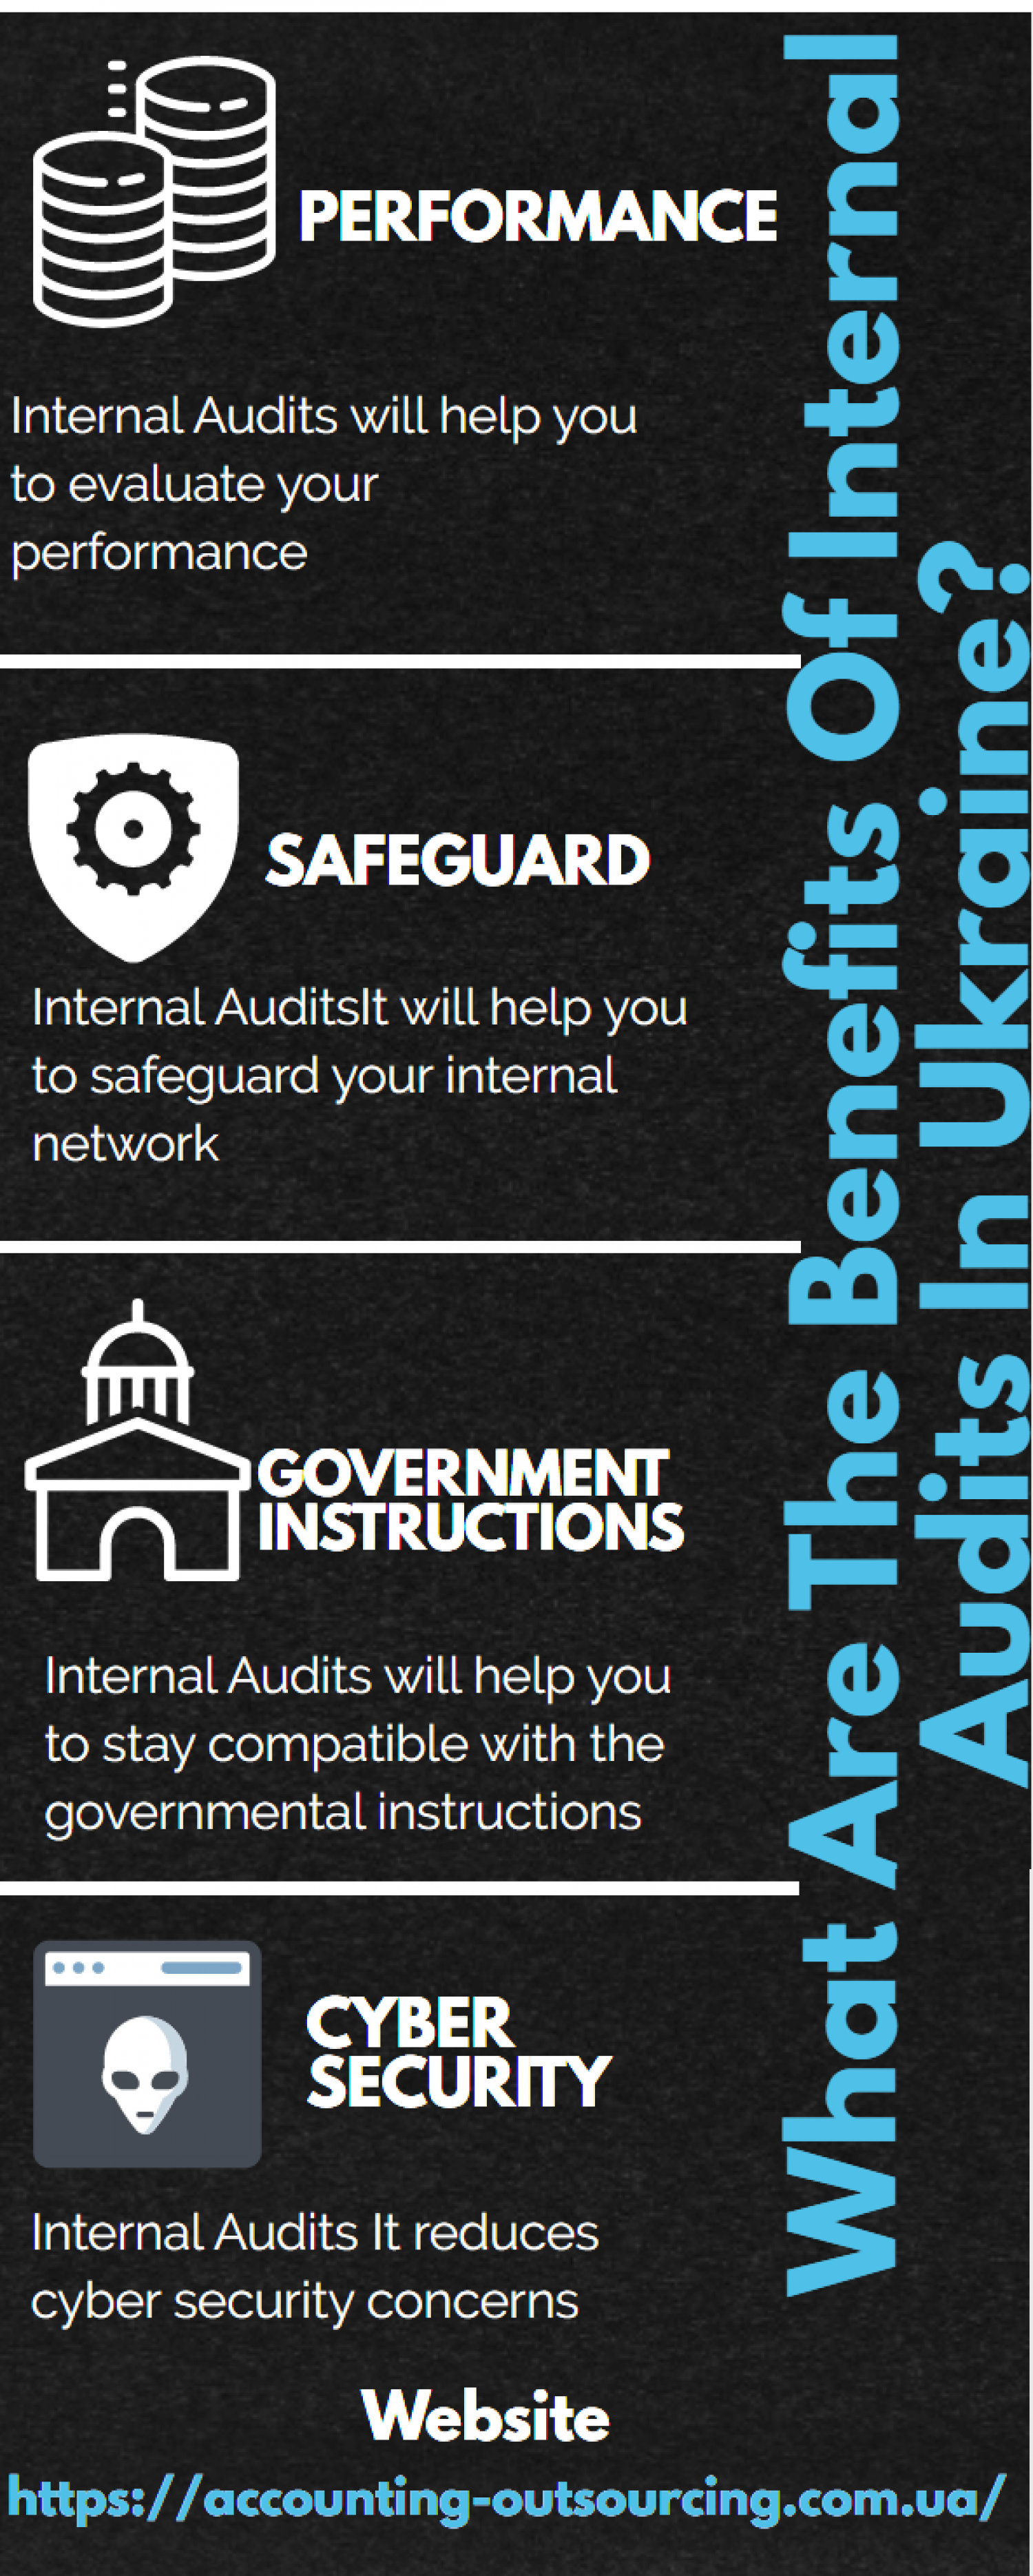 What Are The Benefits Of Internal Audits In Ukraine Infographic